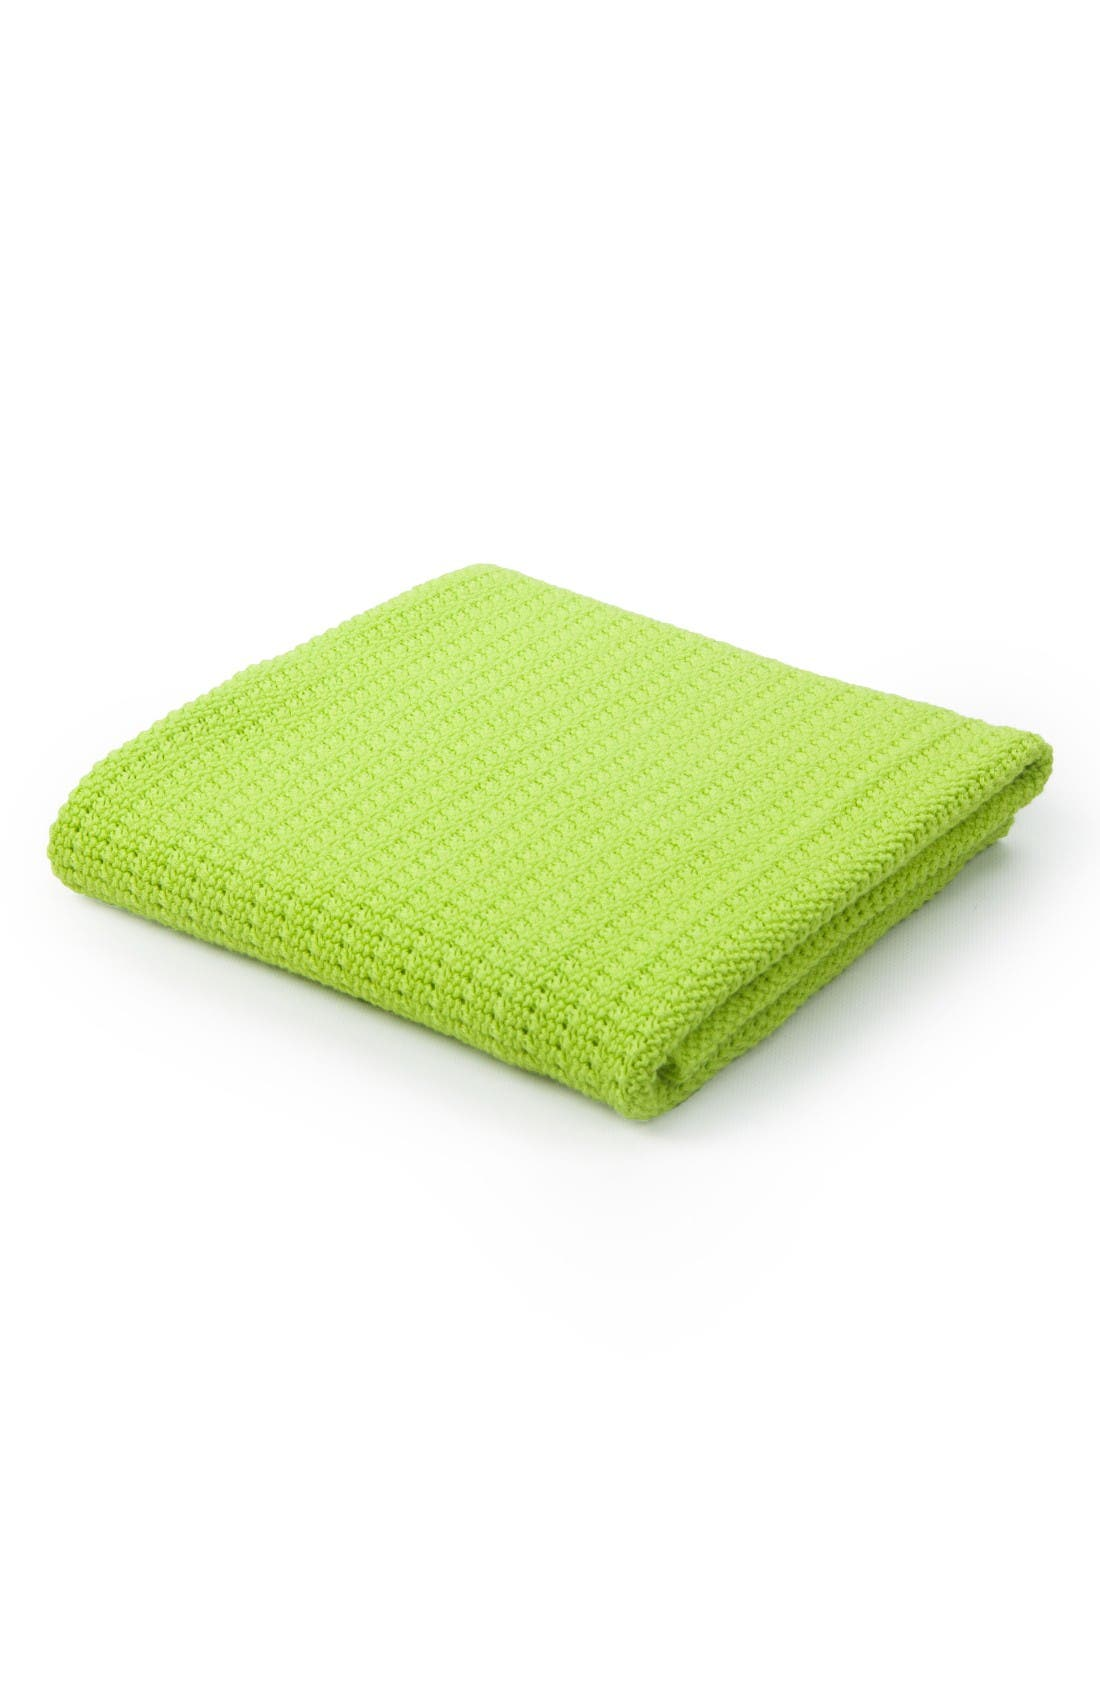 Cellular Cotton Baby Blanket,                             Main thumbnail 1, color,                             Green